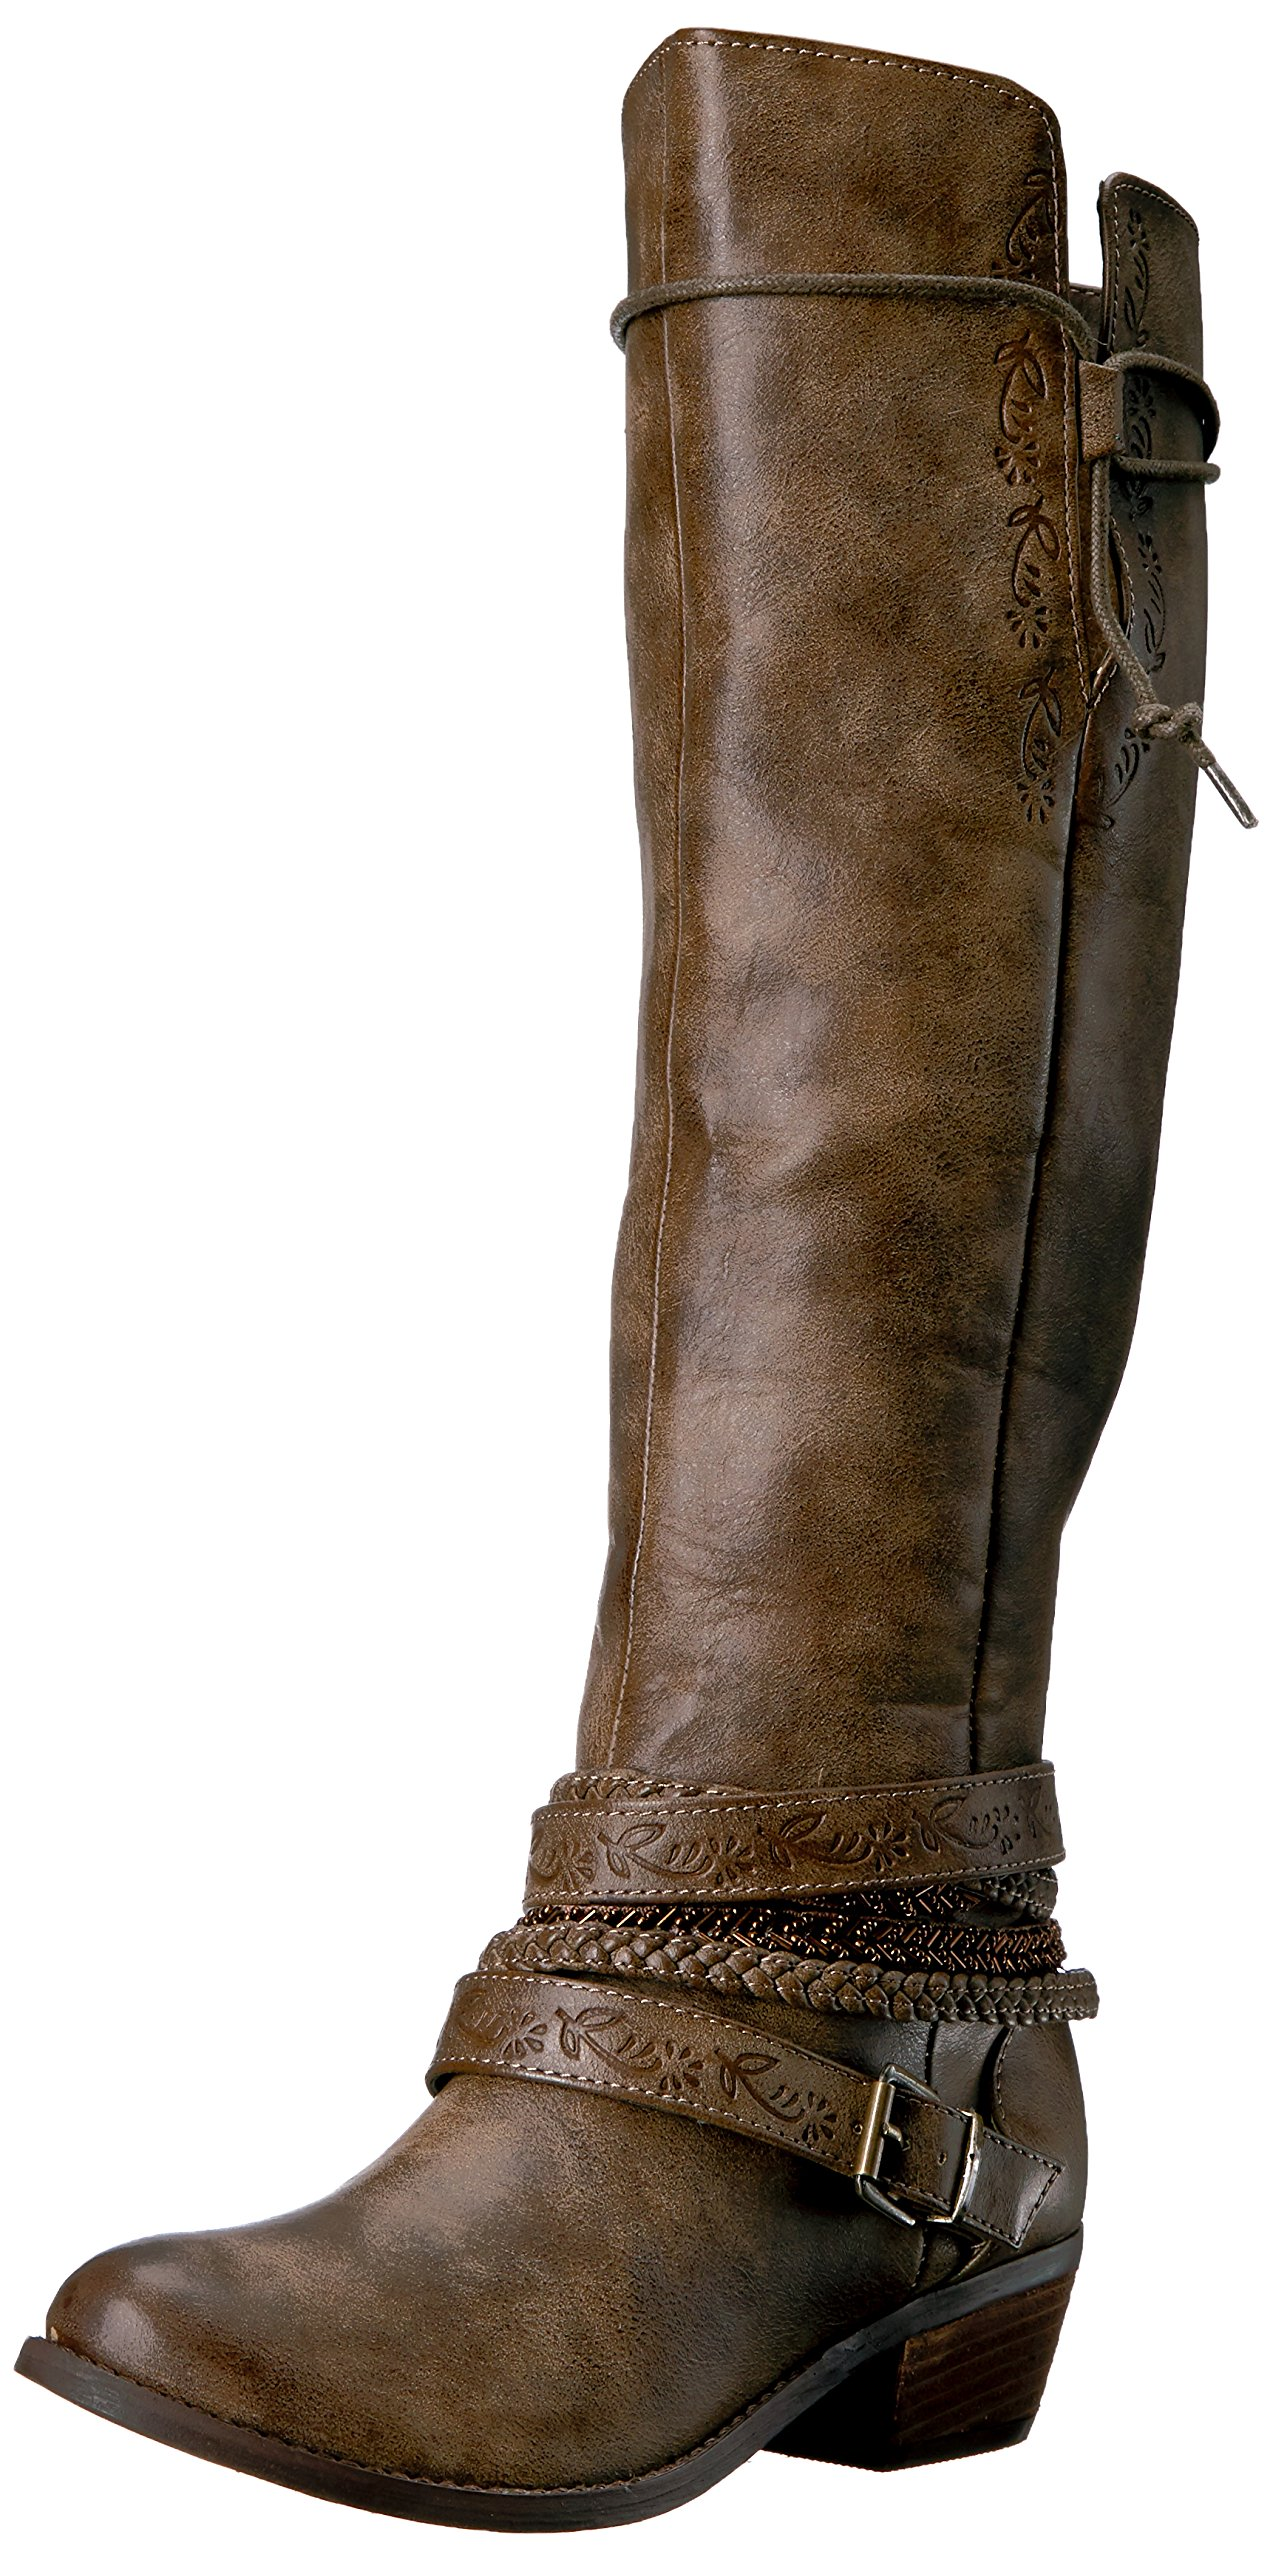 Not Rated Women's Jurupa Riding Boot,Taupe,7.5 M US